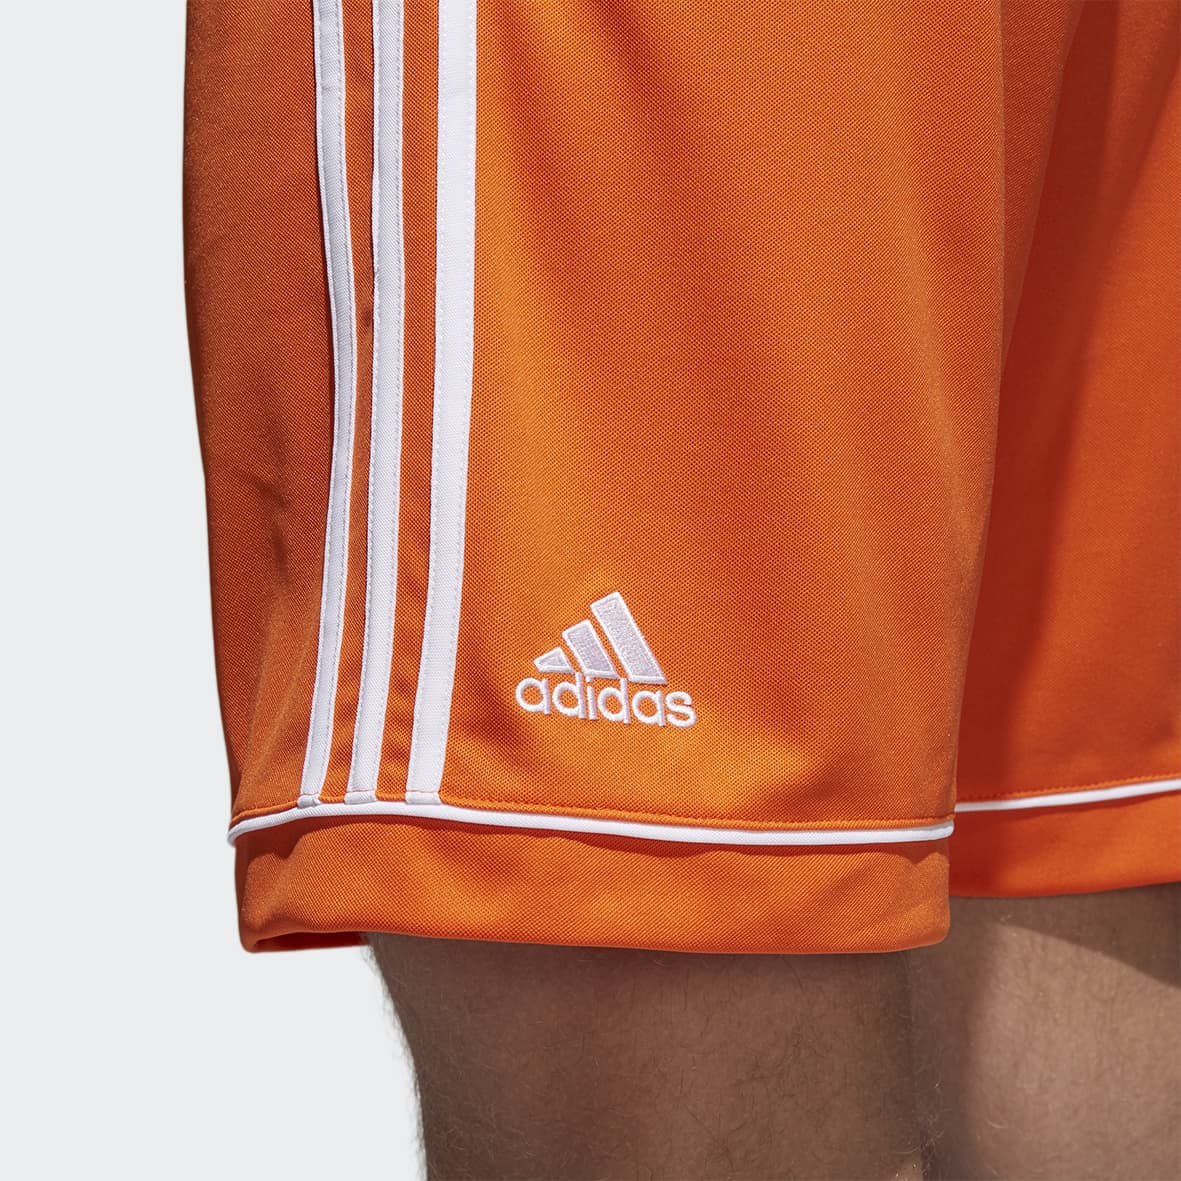 "SHORTS ADIDAS ""3S"" ARANCIONE - Virtus Entella Store"